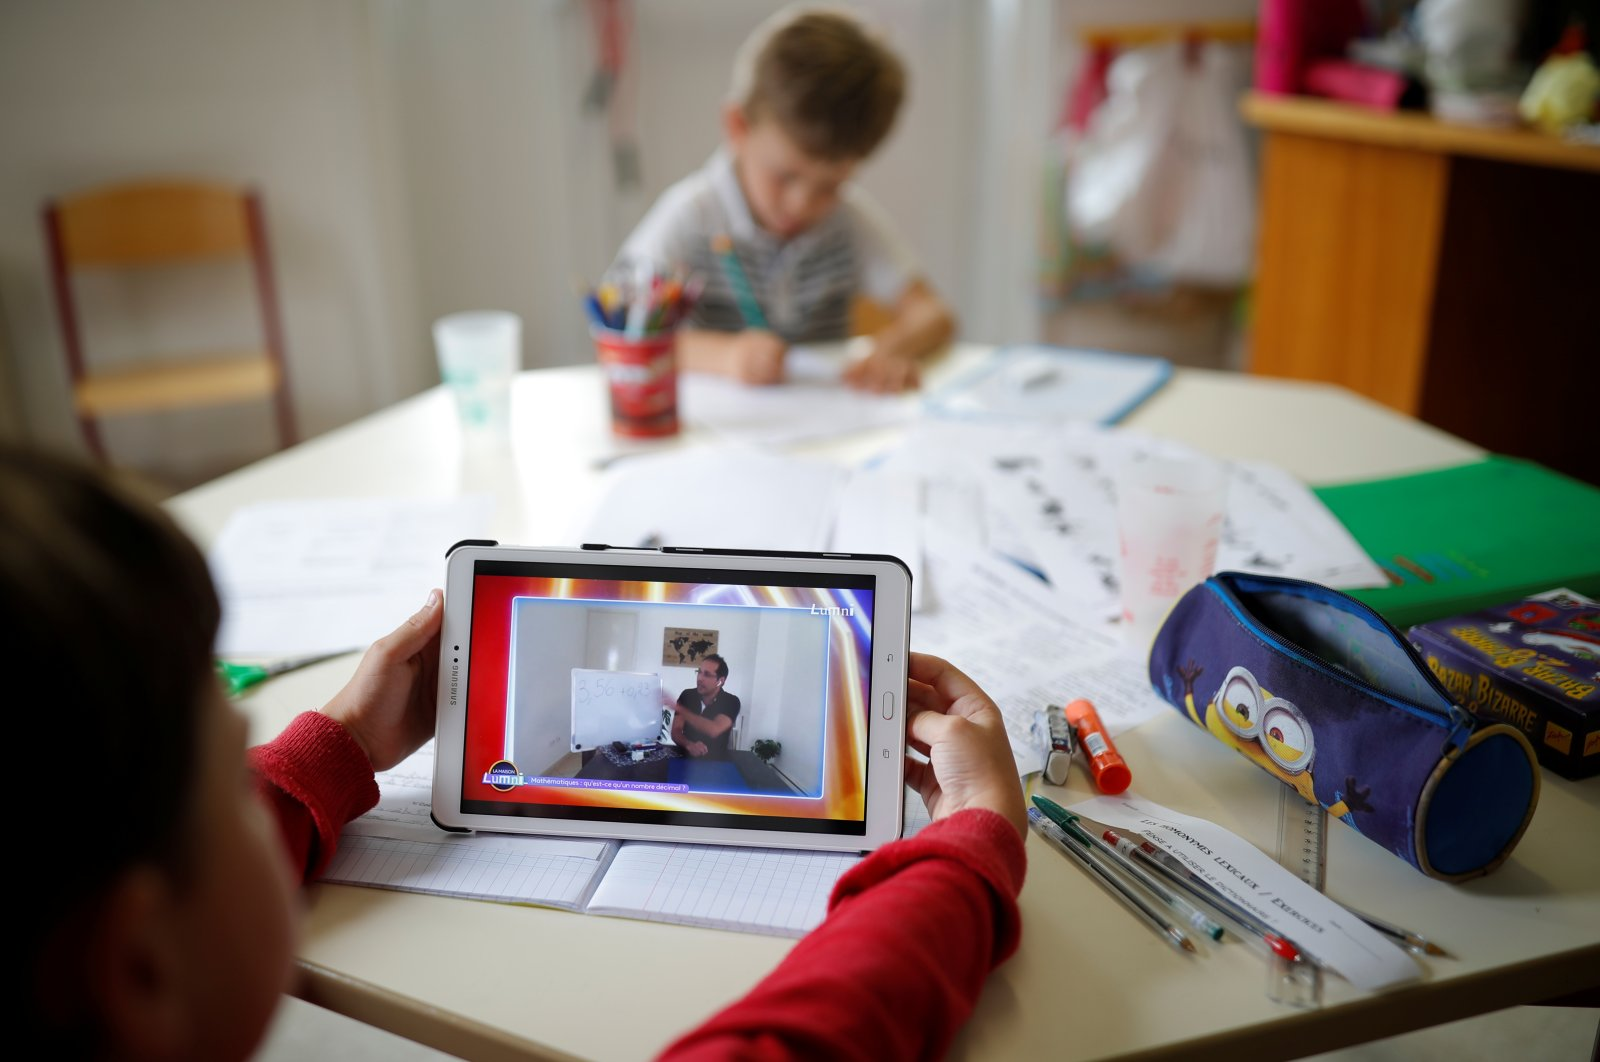 A pupil looks at a tablet to study with his teacher during an online school in a private school open to children of health workers and workers on the coronavirus frontline in Saint-Sebastien-sur-Loire near Nantes during the outbreak of the coronavirus disease (COVID-19) in France, May 4, 2020. (Reuters Photo)